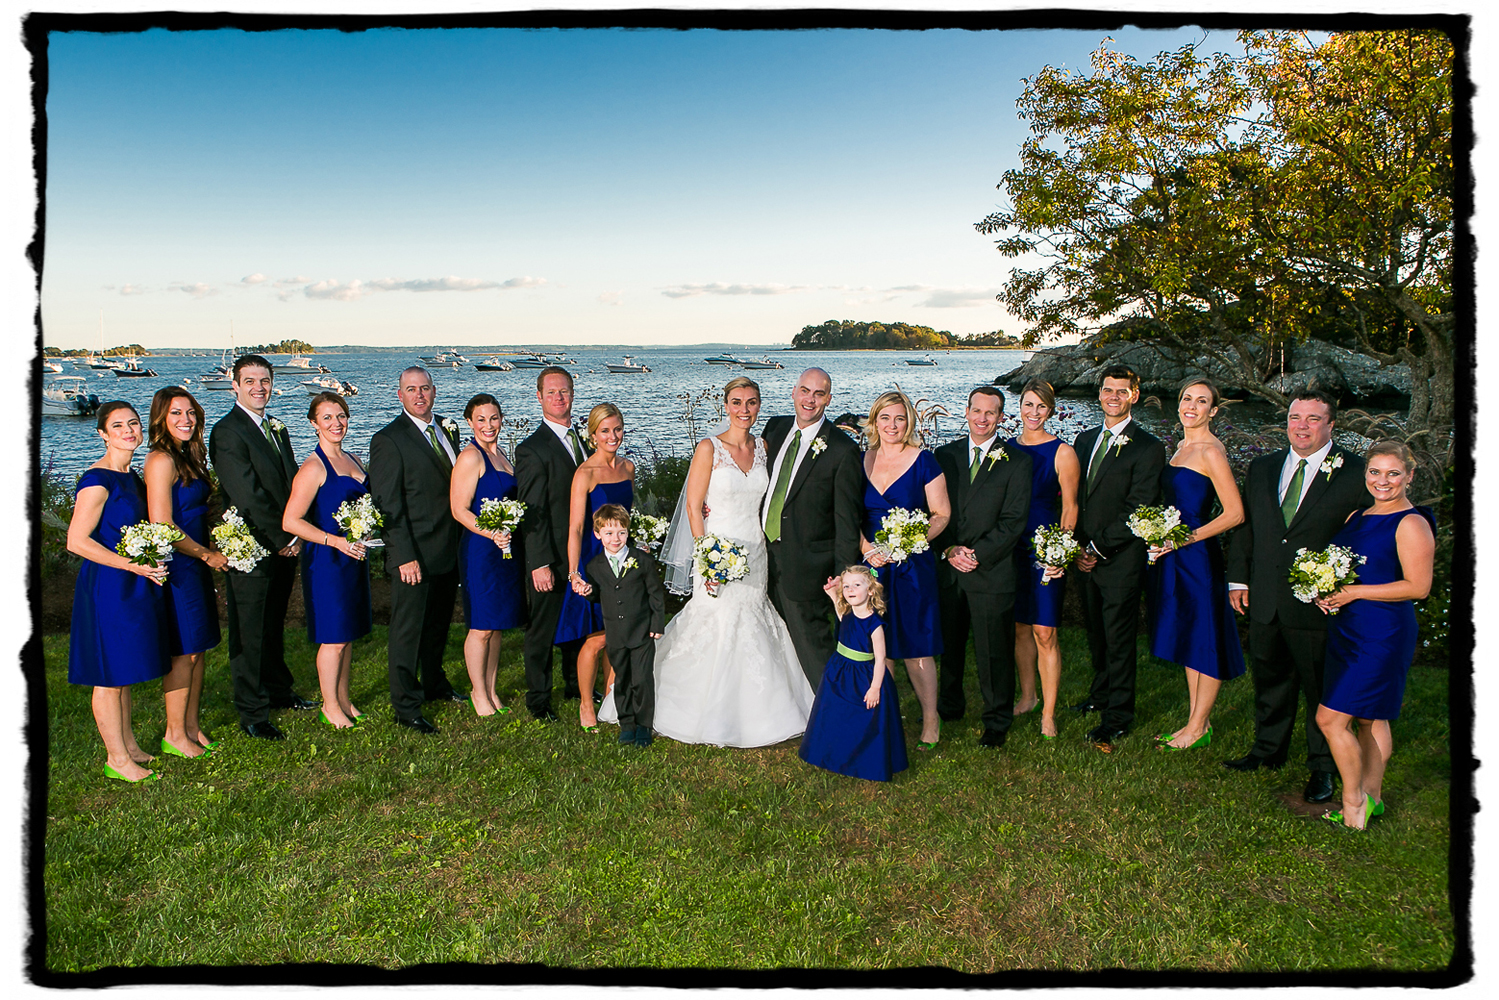 This wedding party was perfect in blue in the yacht club setting of Belle Haven Club in Greenwich, Connecticut.